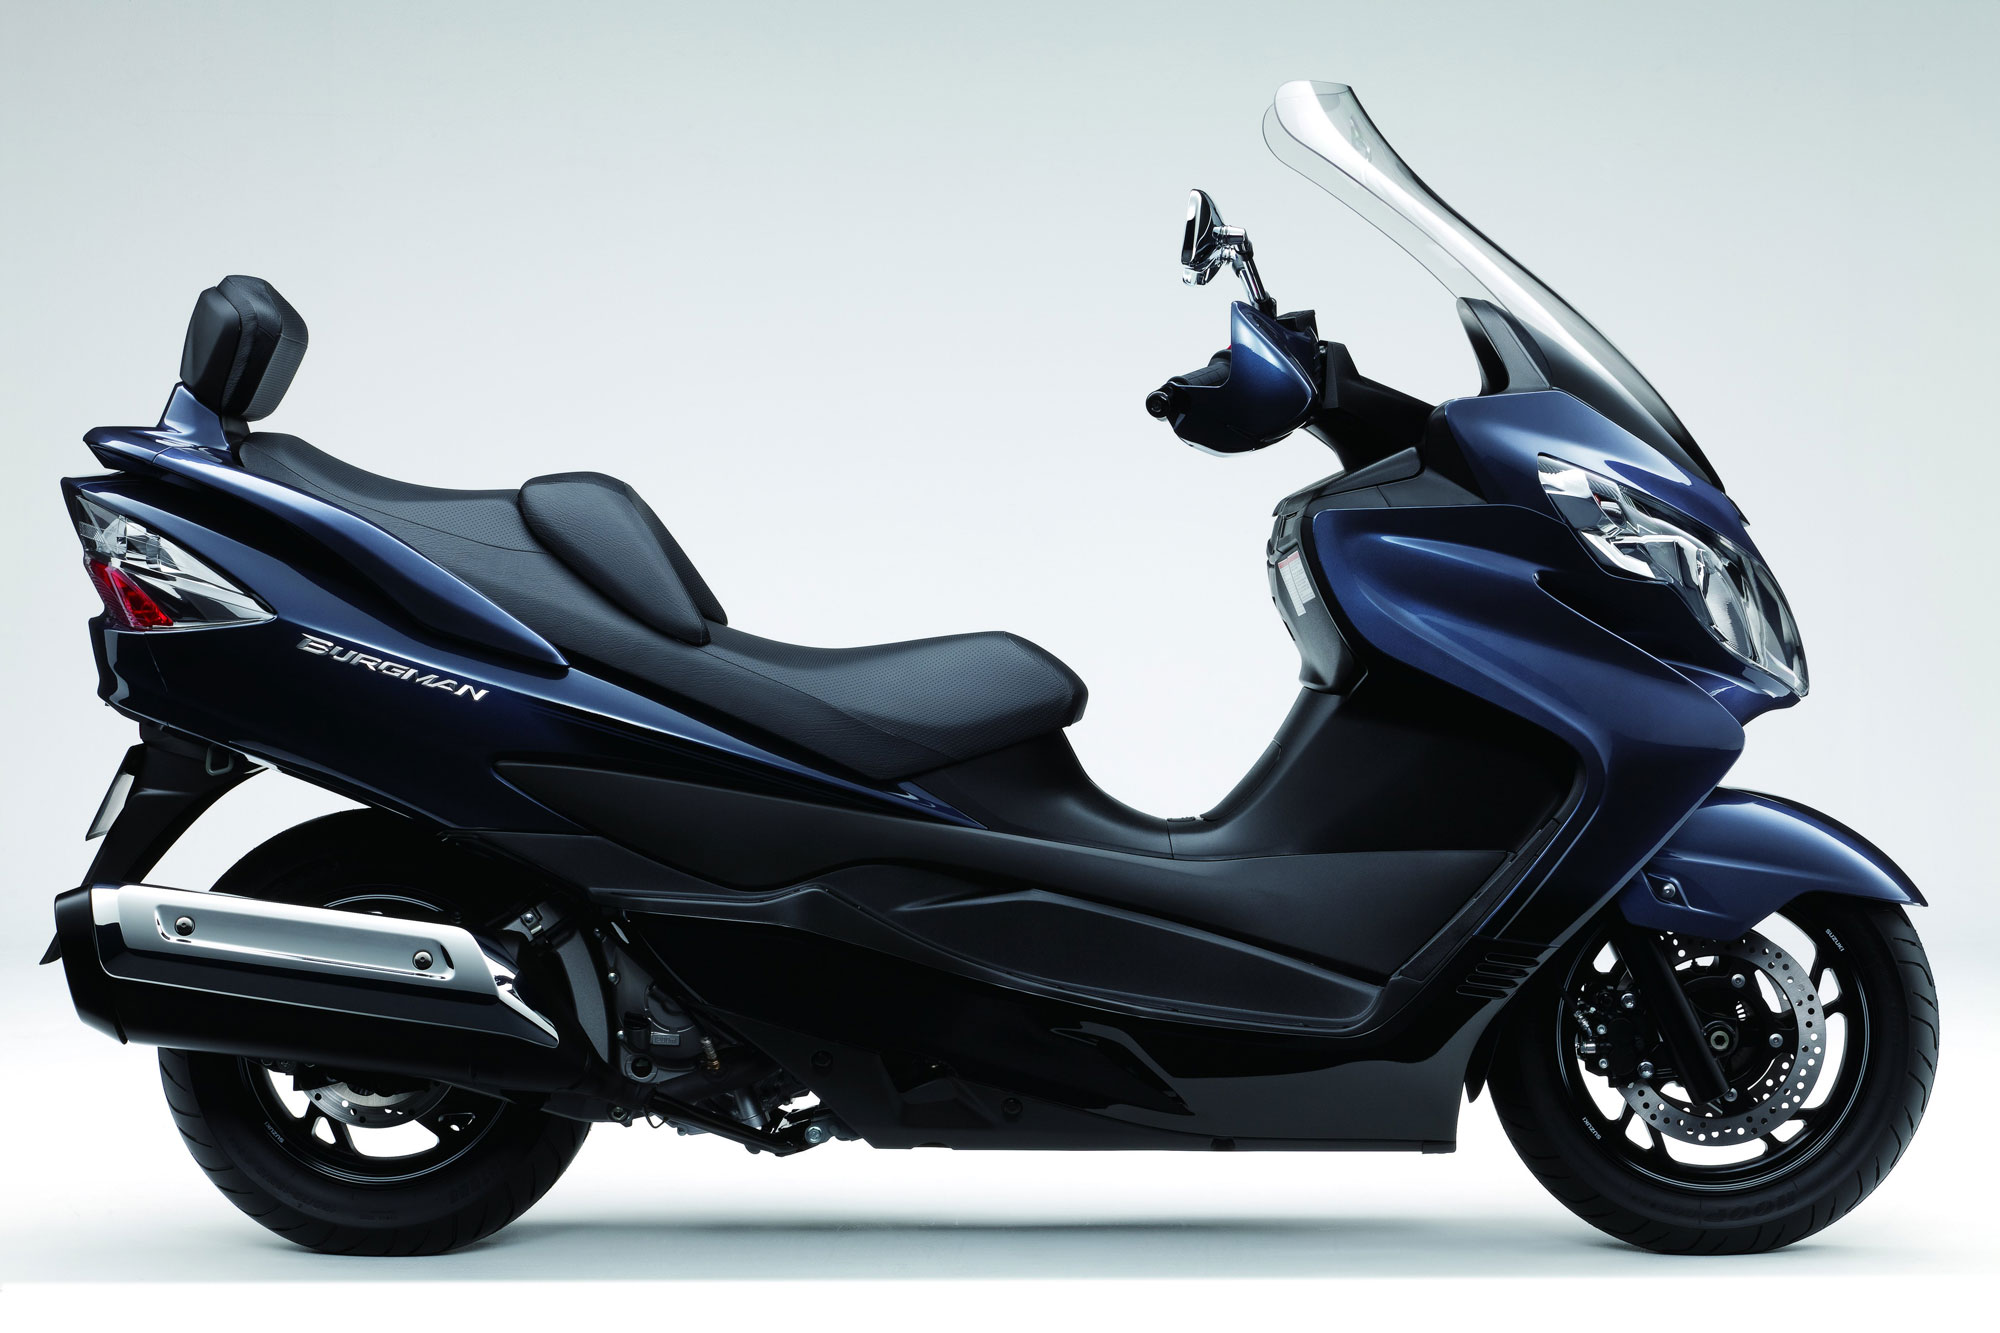 2012 suzuki burgman 400 abs review